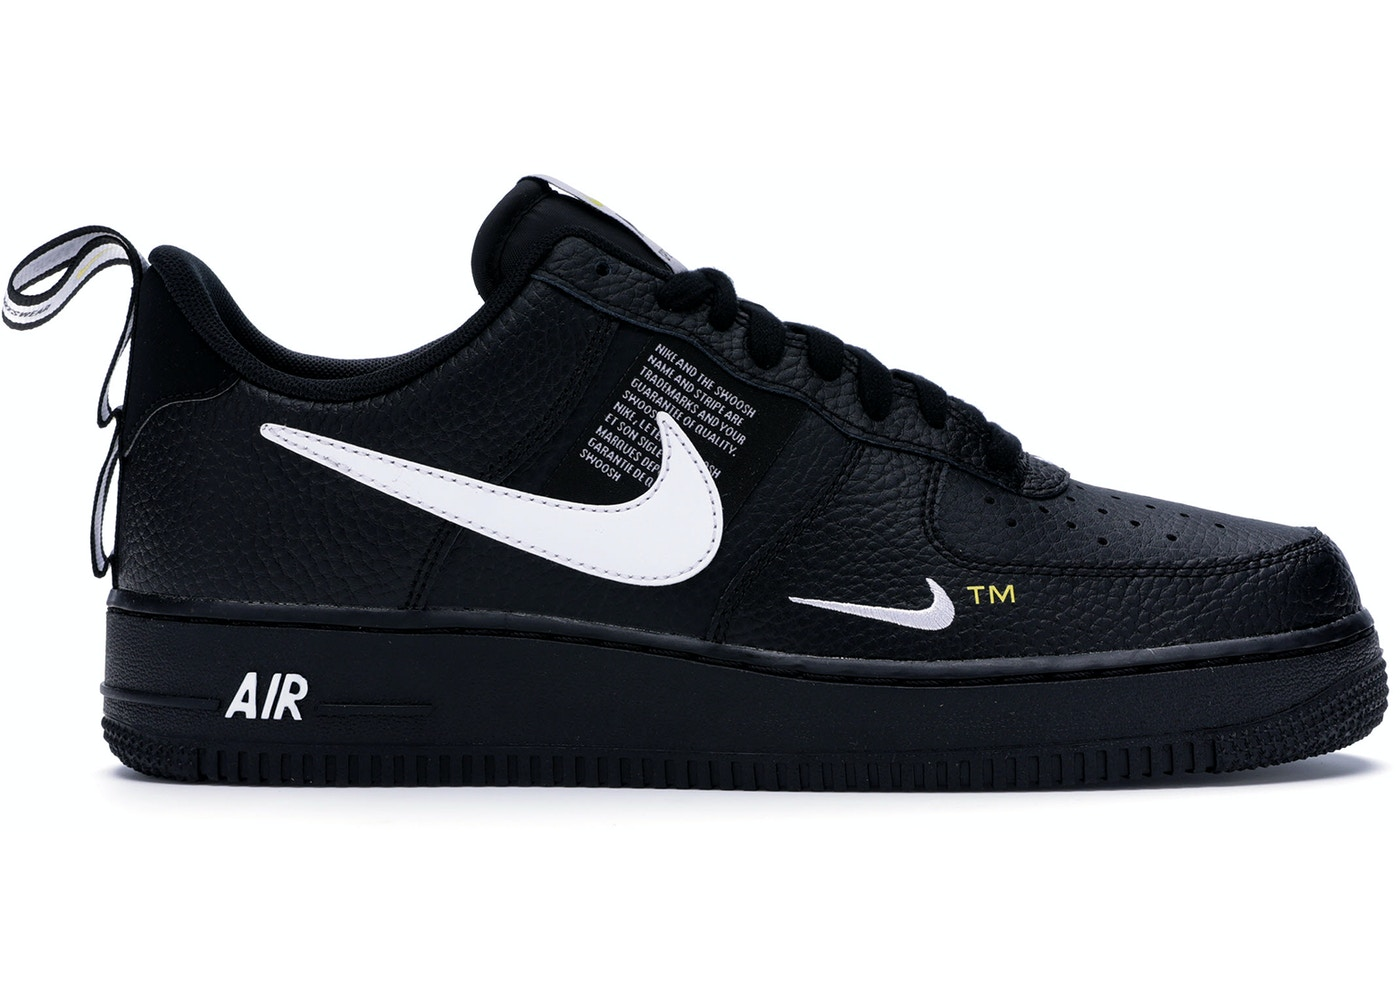 super popular e1471 23d98 Buy Nike Air Force 1 Shoes  Deadstock Sneakers